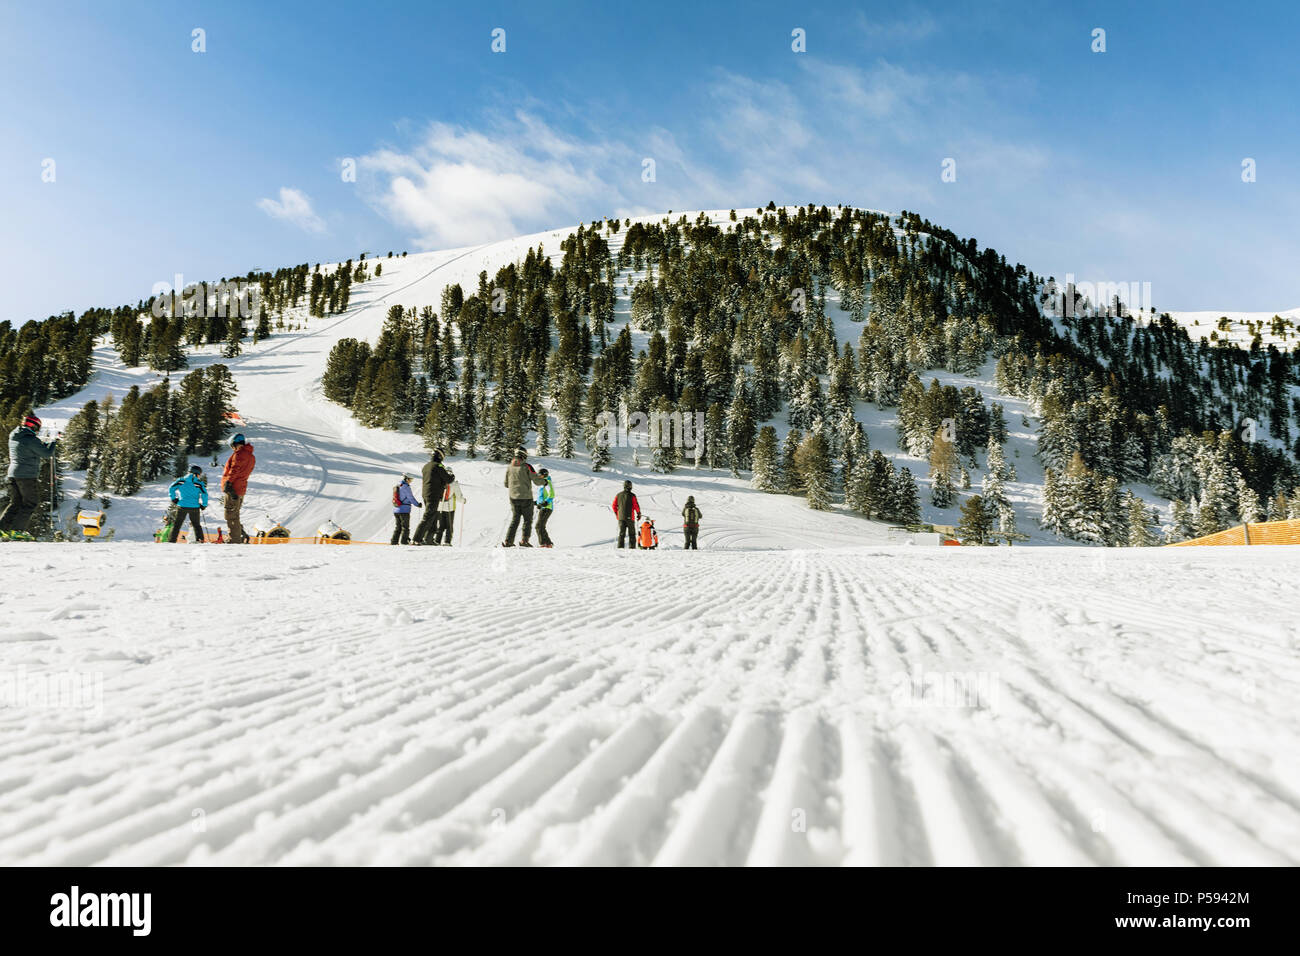 A group of skiers in the background on a modified slopes in the Dolomites on a sunny day.. Empty ski slope in winter on a sunny day. Prepare ski slope - Stock Image